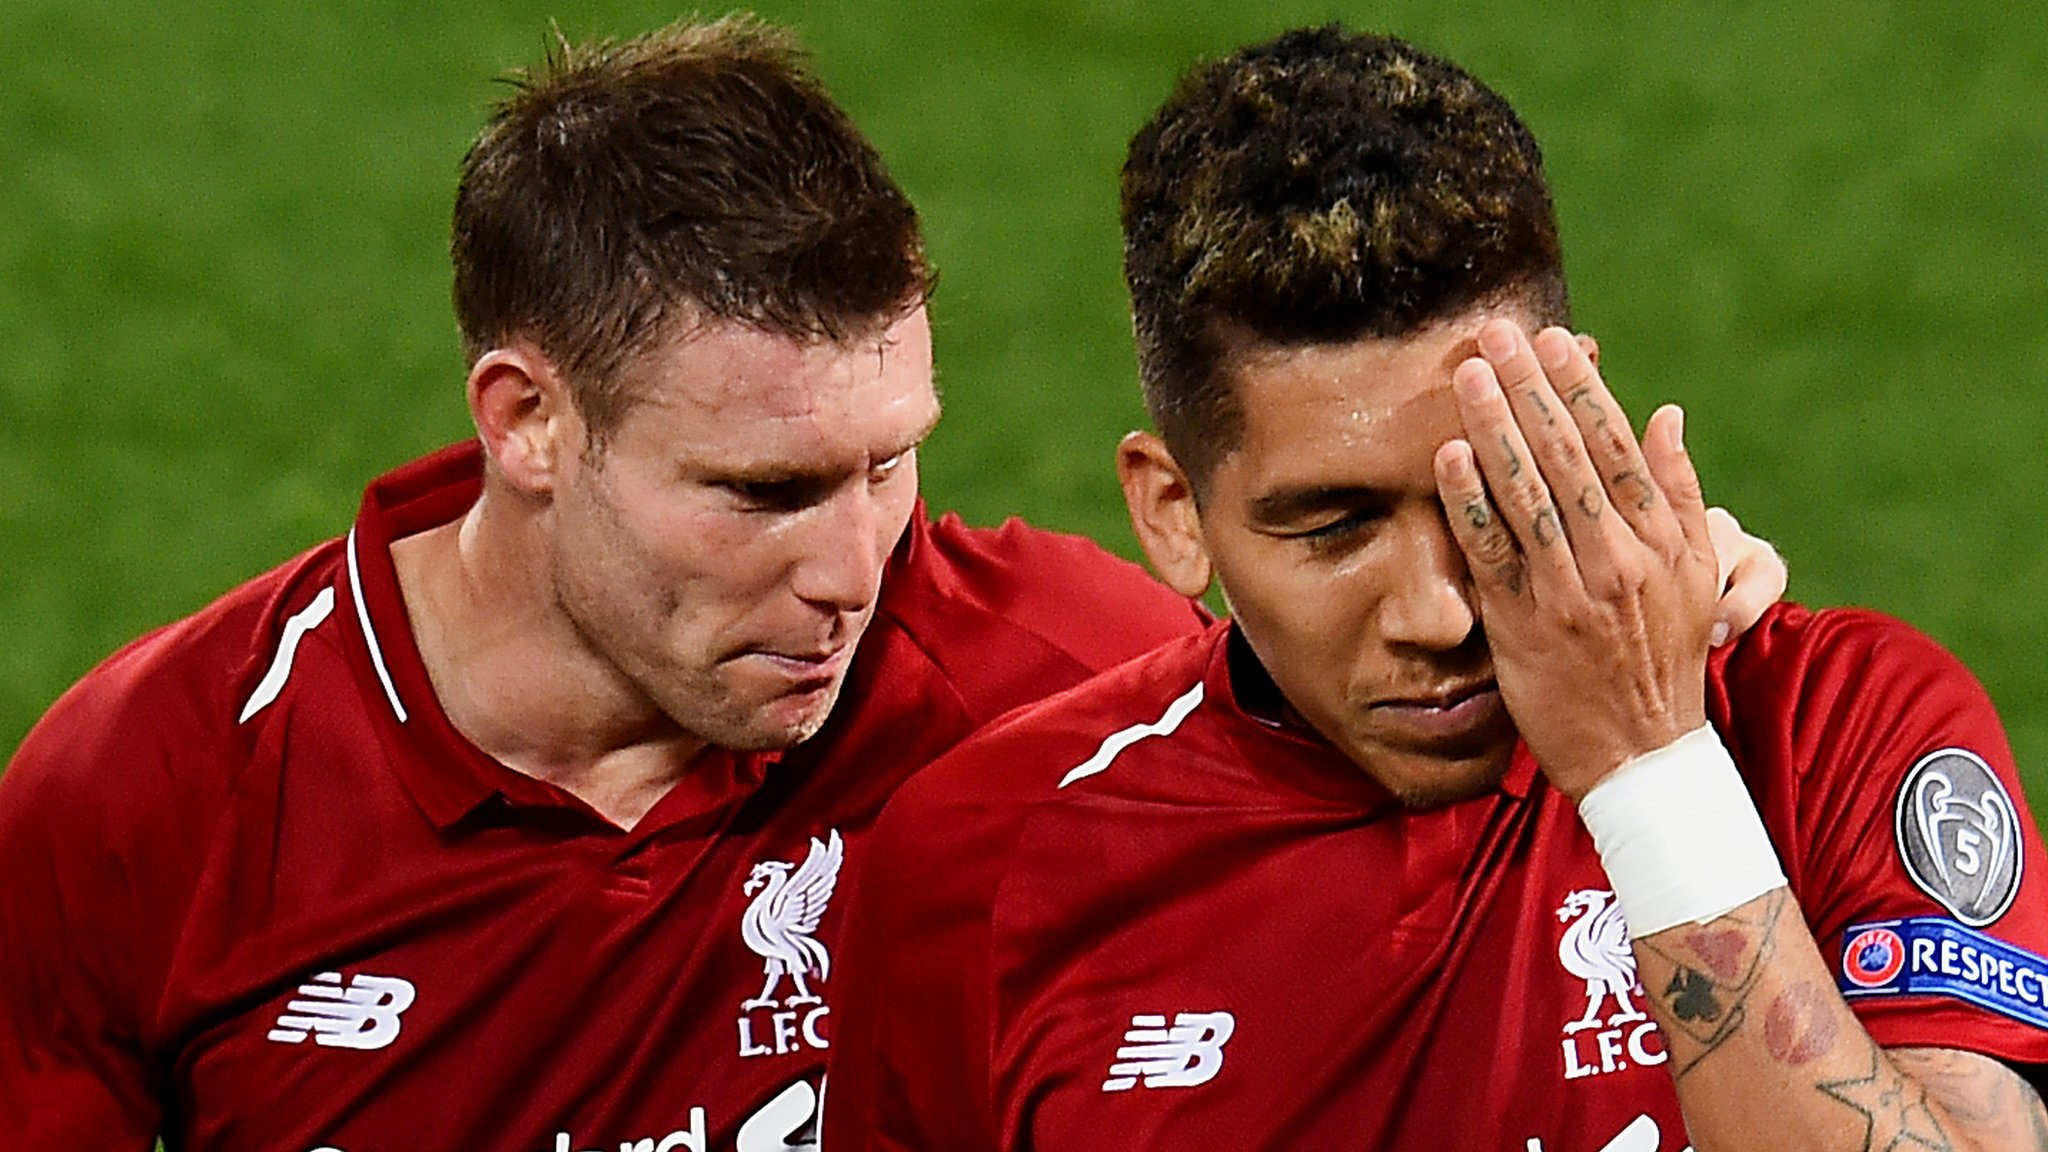 Liverpool 3-2 Paris St-Germain: Jurgen Klopp 'loved' Roberto Firmino celebration